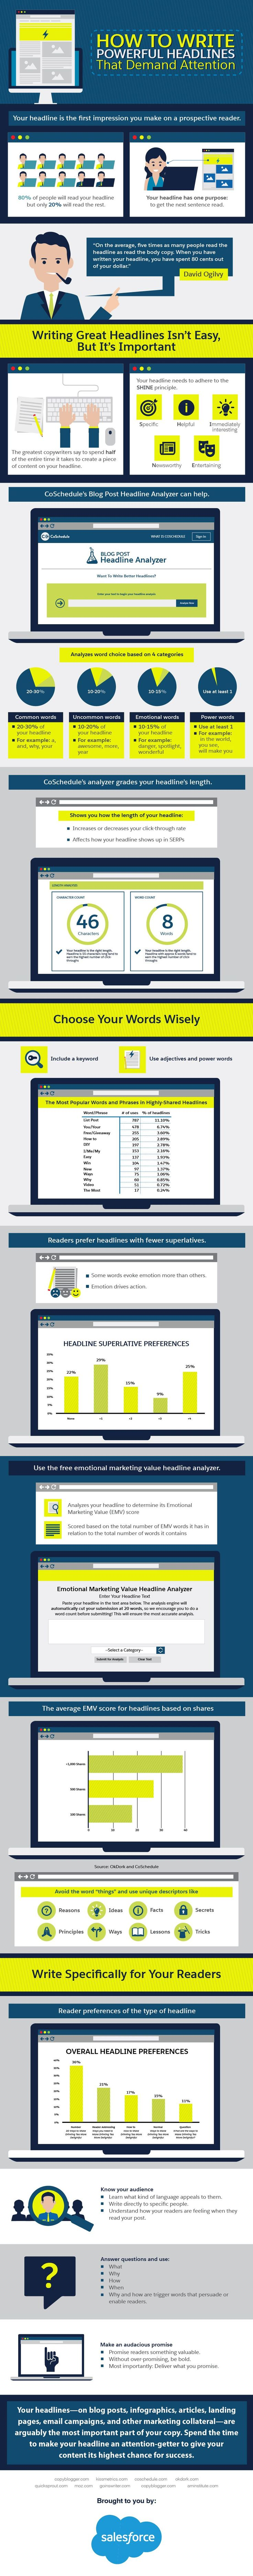 Your headlines - on blog posts,infographics, articles, landing pages, email campaigns and other marketing collateral - are arguably the most important part of your copy.